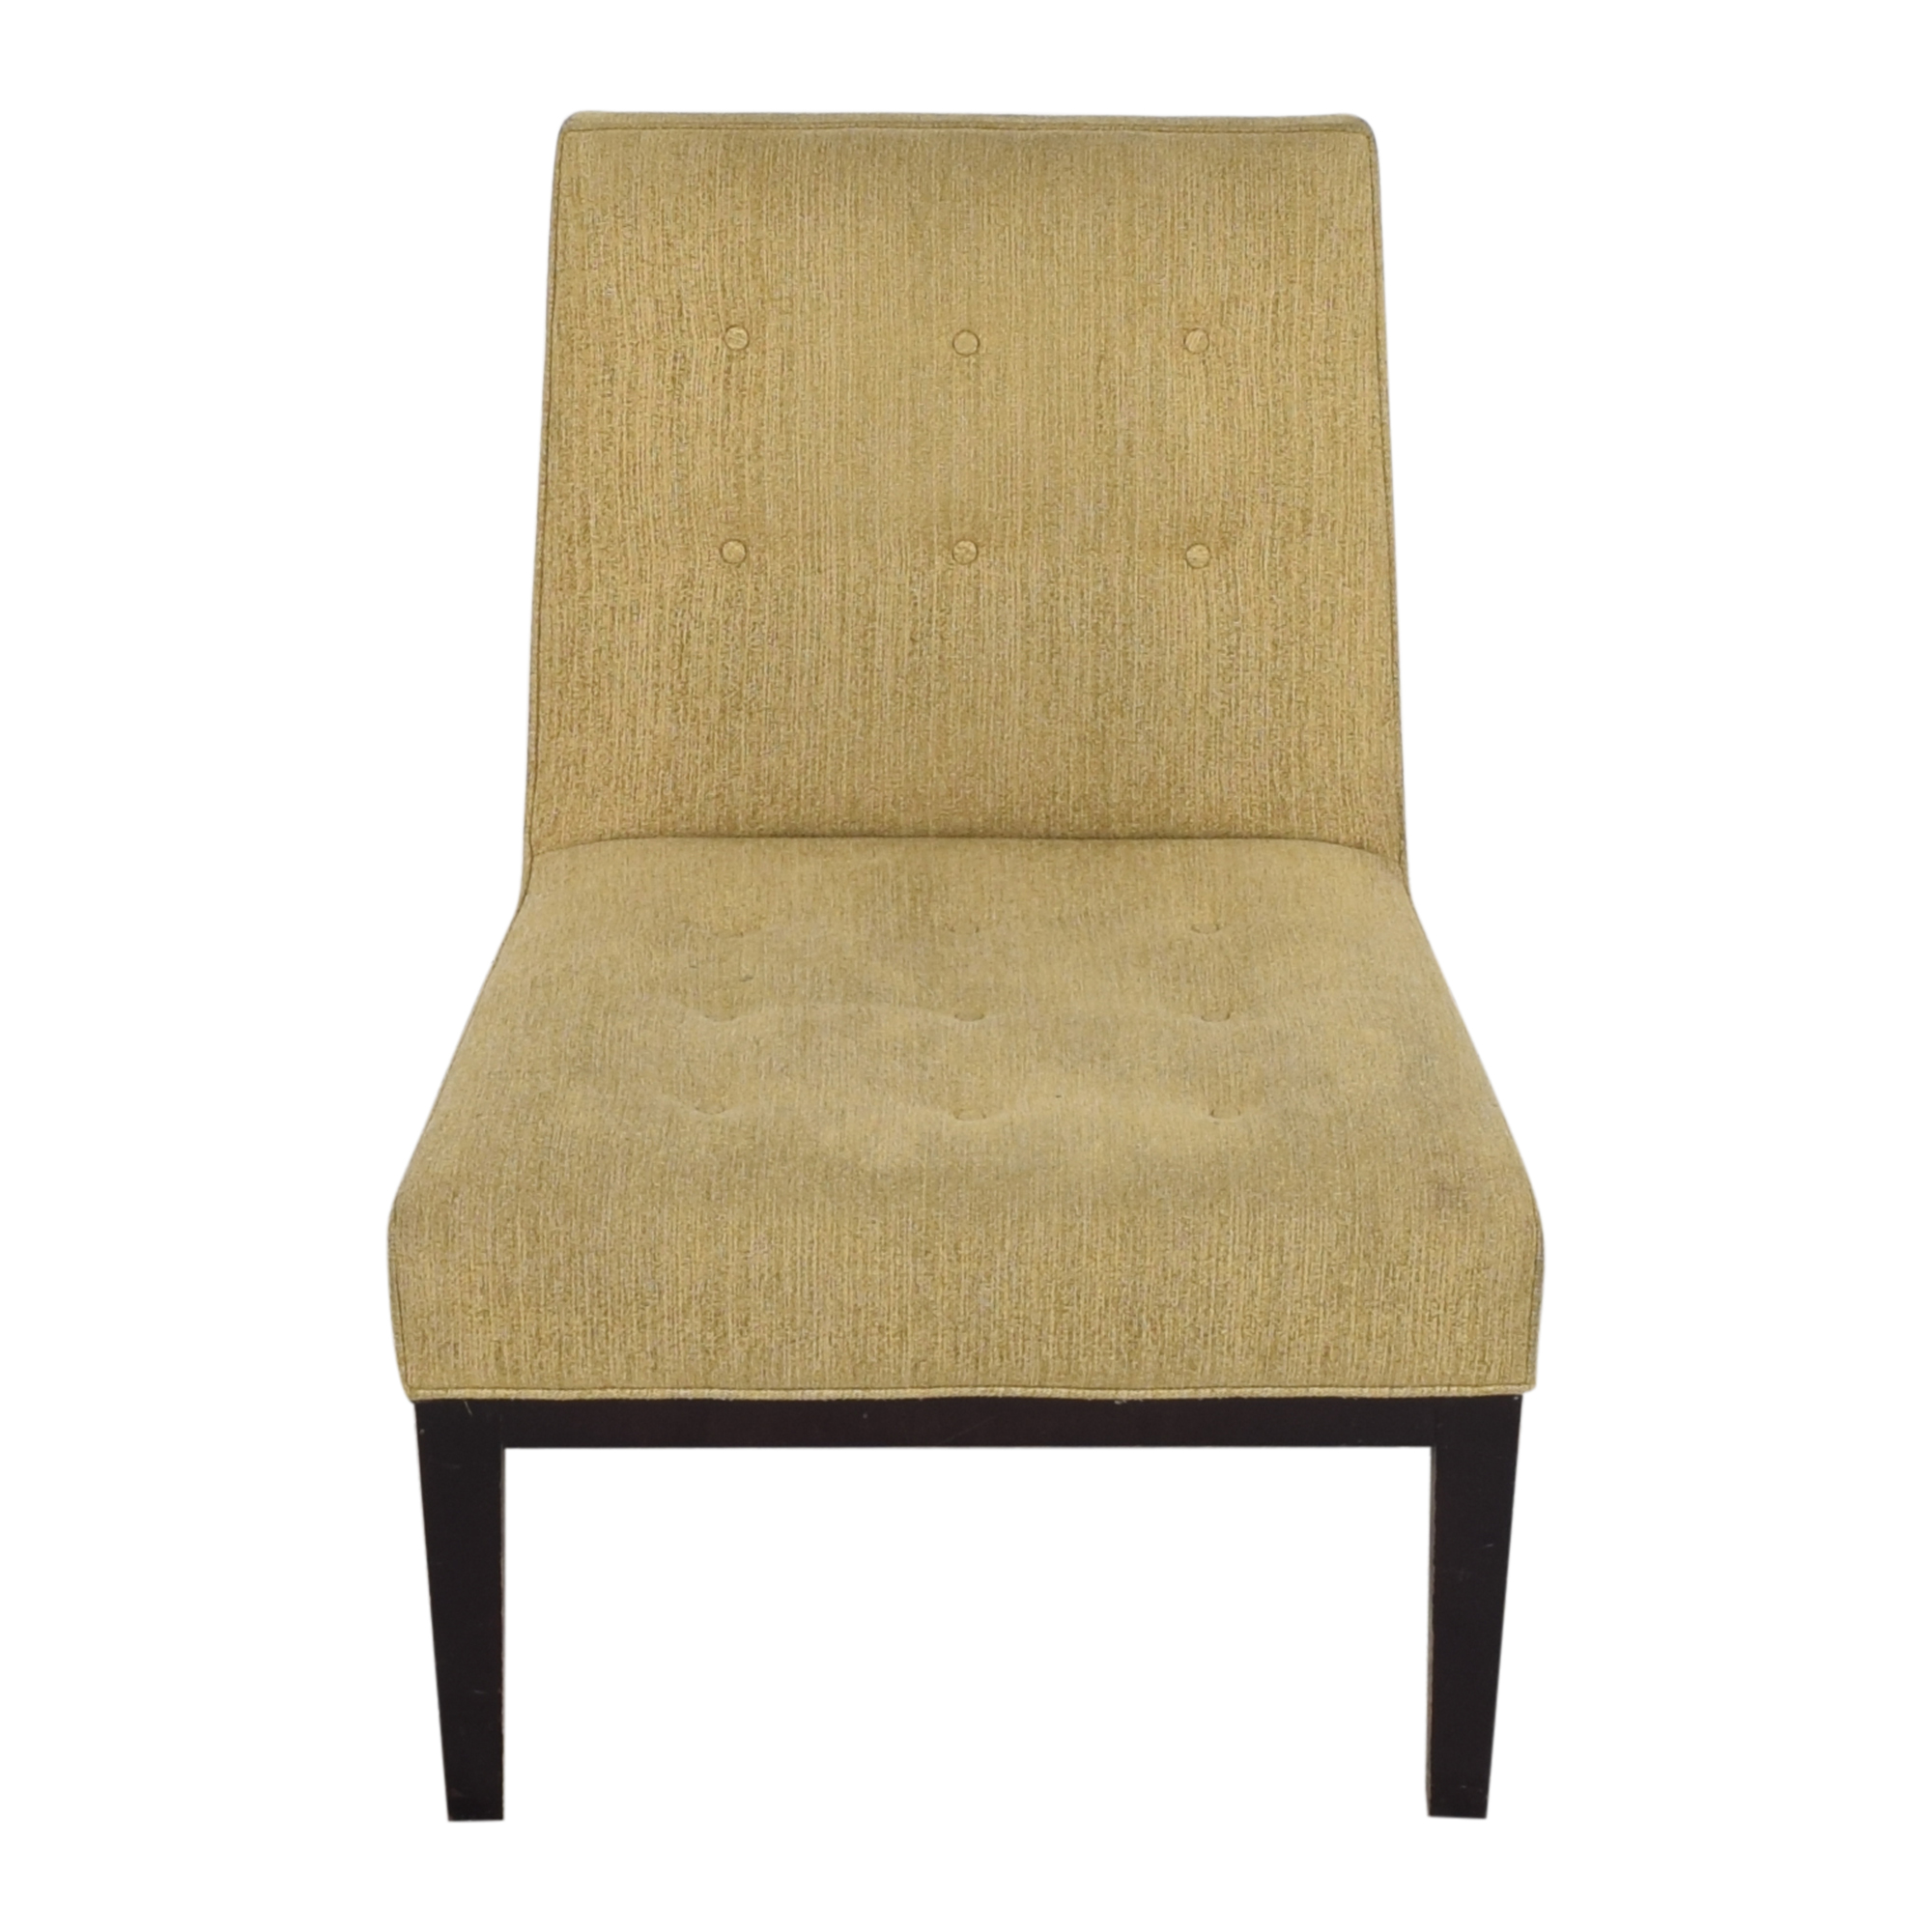 Room & Board Room & Board Tufted Slipper Chair on sale